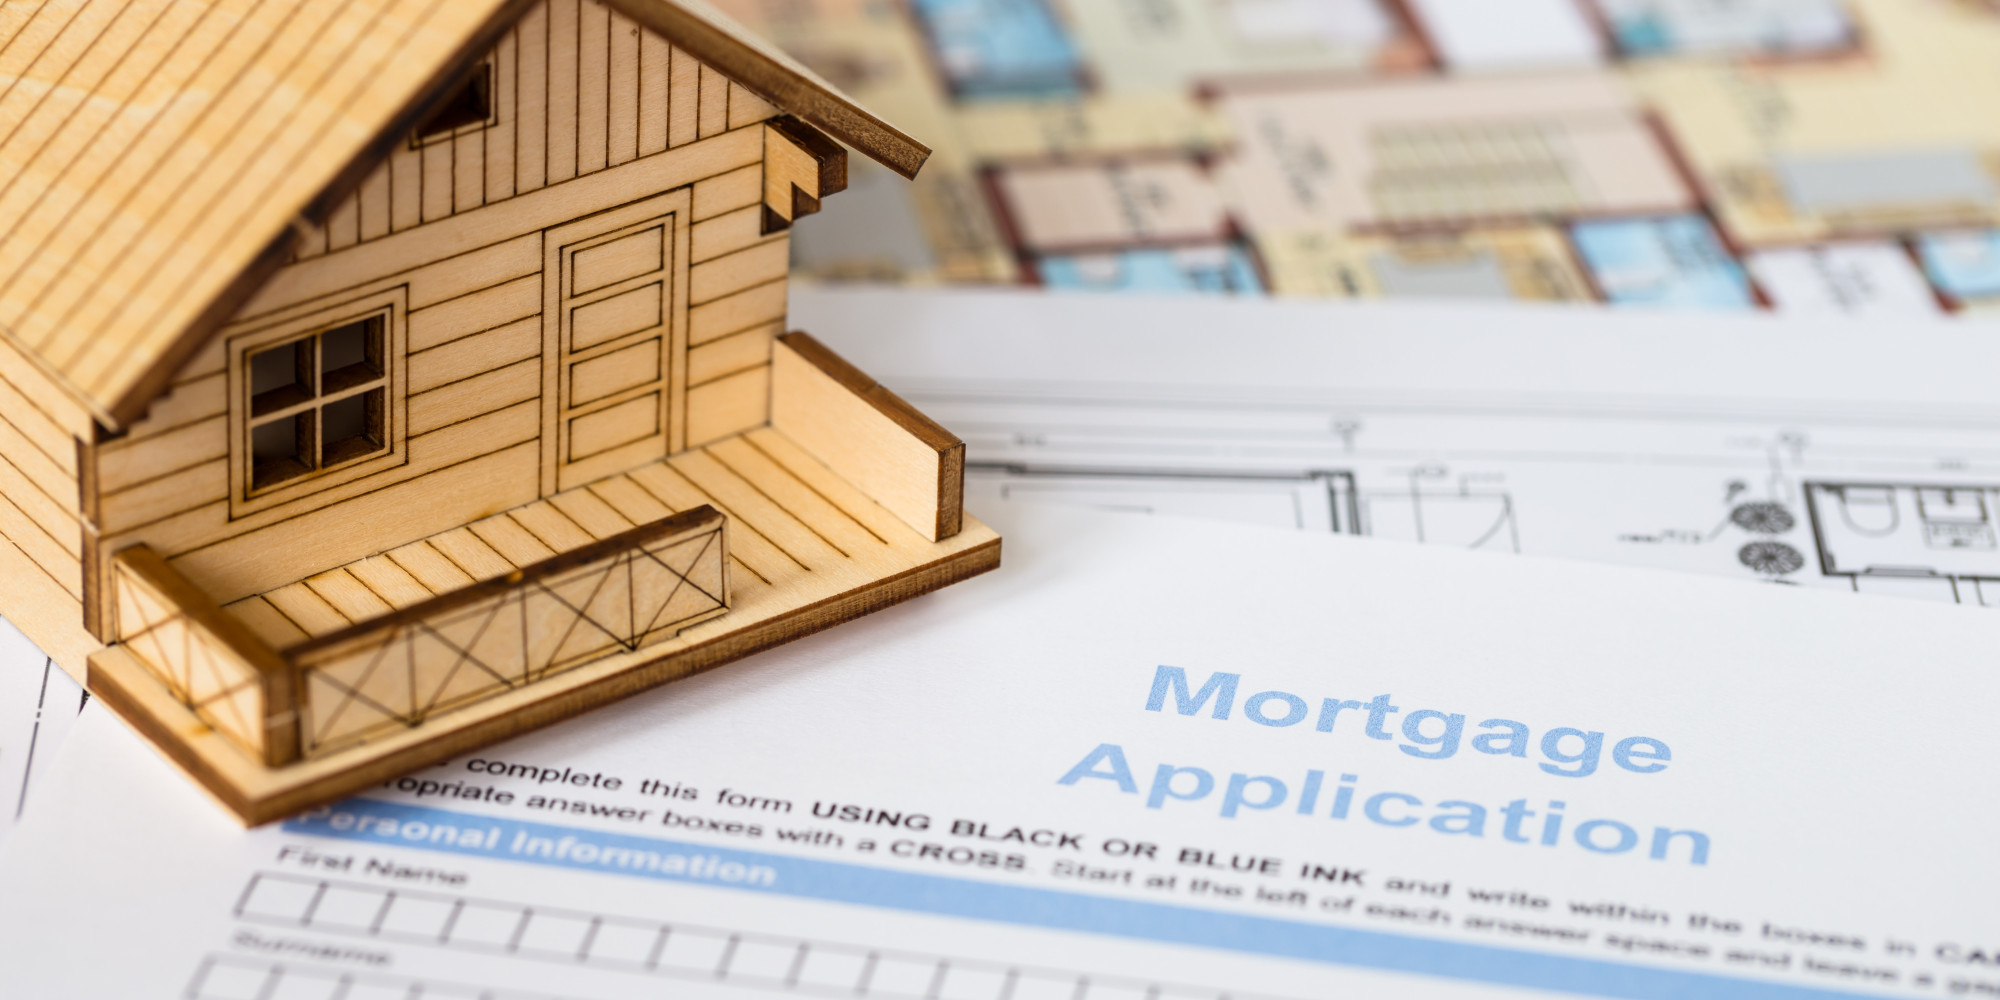 Home mortgages will rising interest rates hurt the housing market?